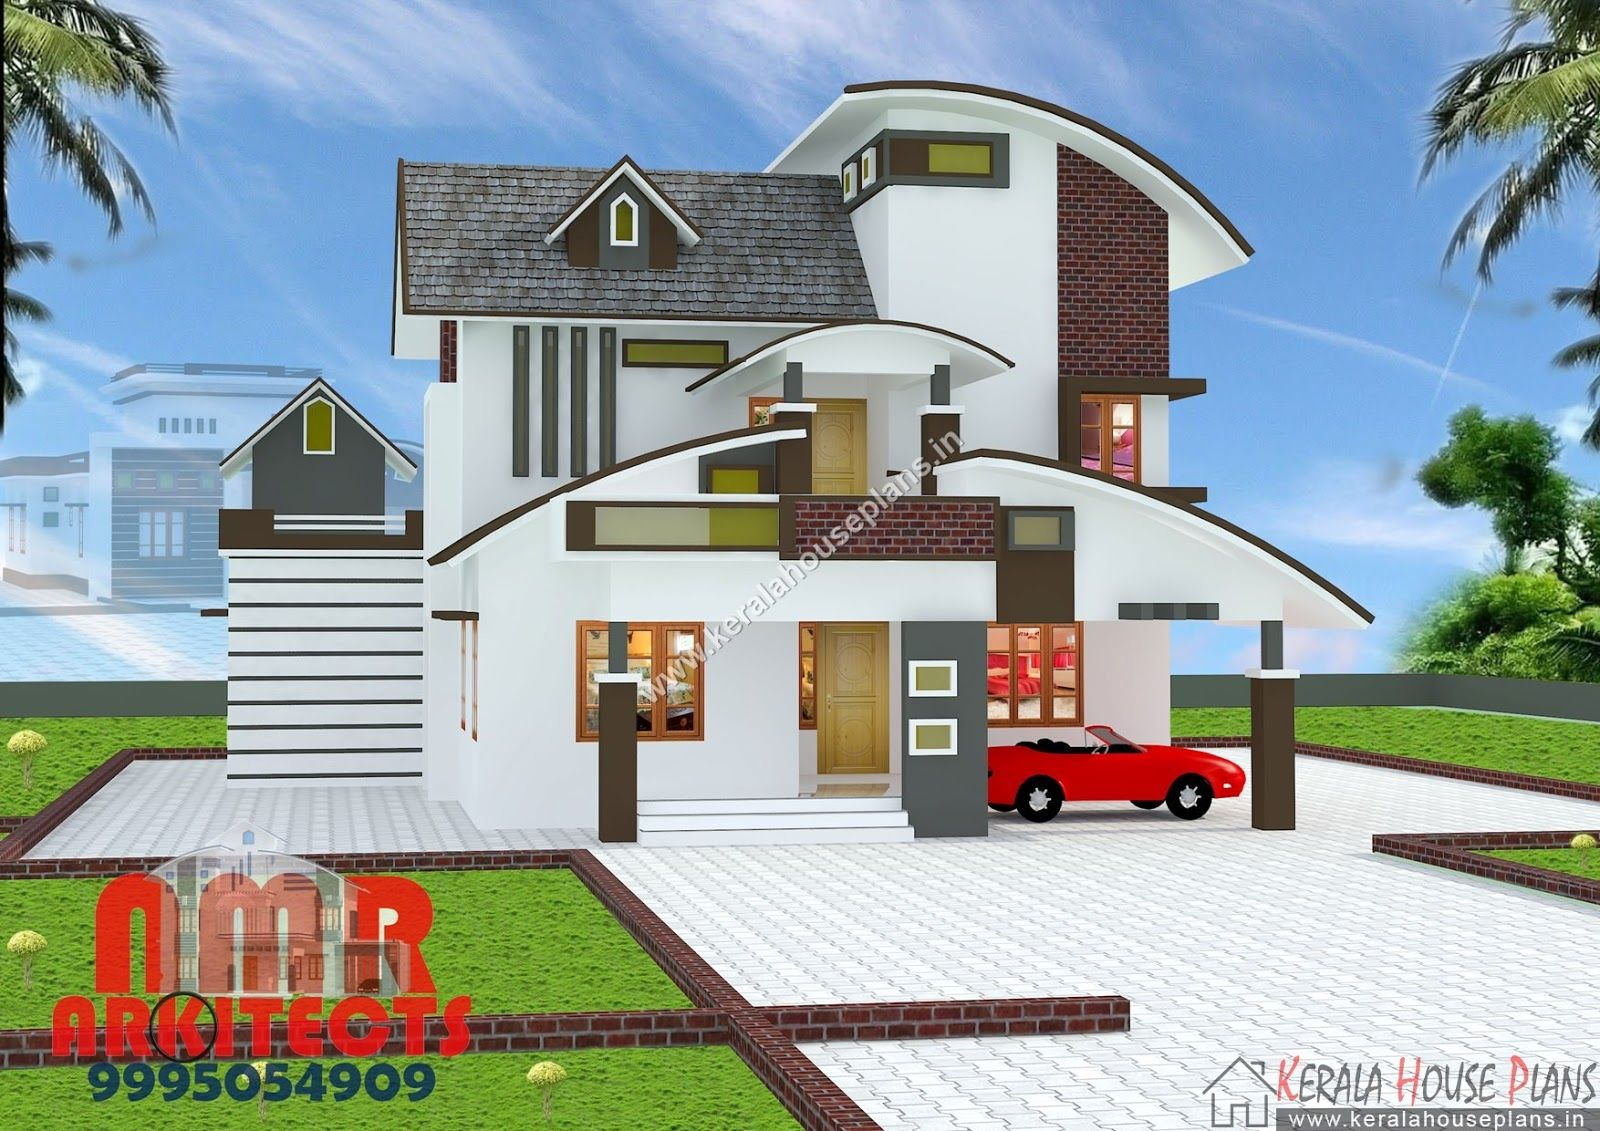 Kerala House Plans Elevation Floor Plankerala Home Design And Interior Ideas